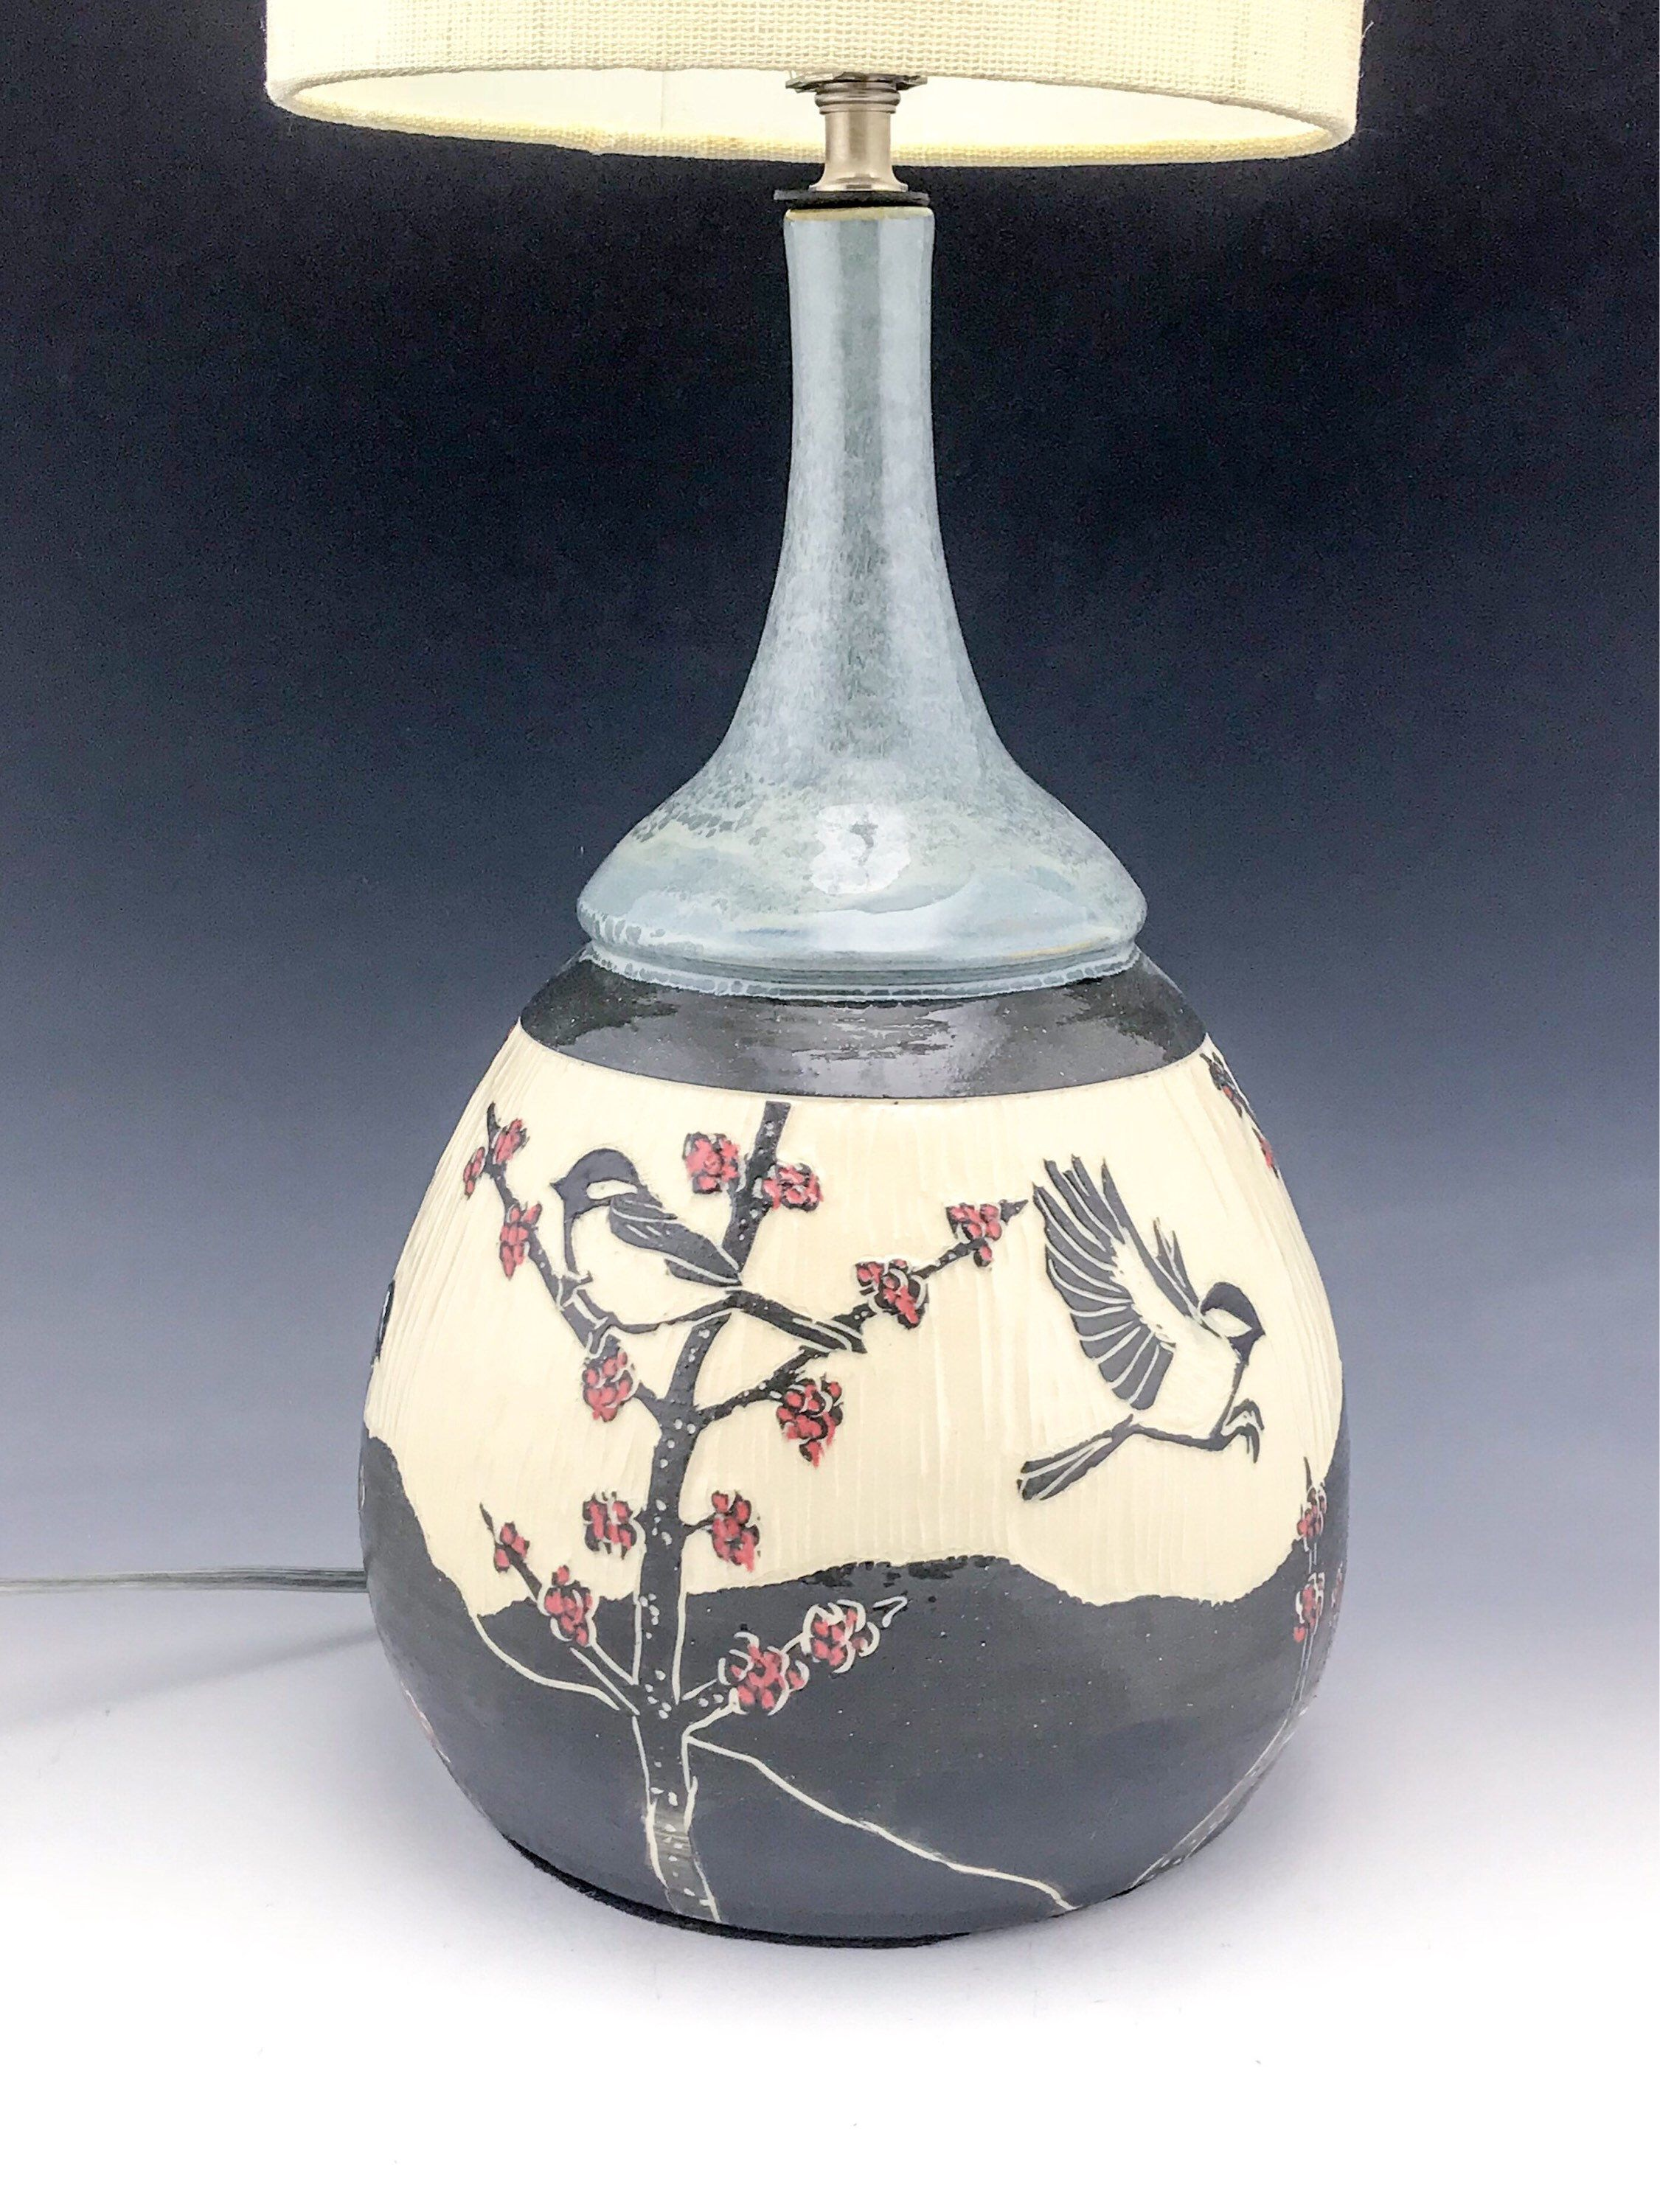 Sgraffito Ceramic Adee Lamp Base In Gray With Red Maple Buds By N3pottery On Etsy Https